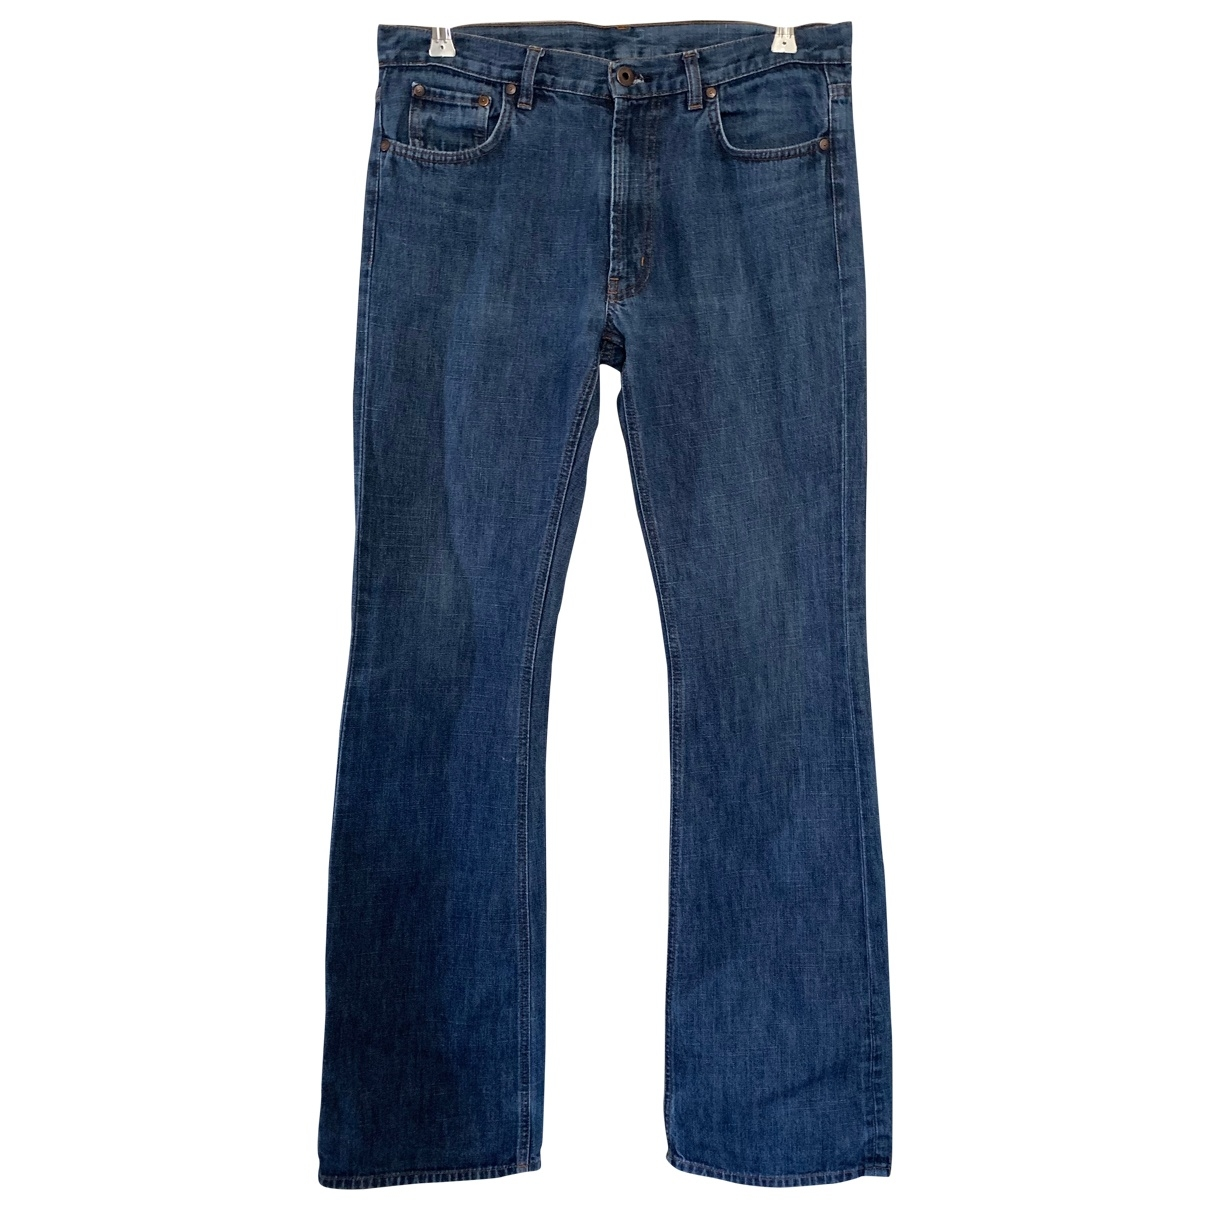 Miu Miu \N Blue Cotton - elasthane Jeans for Men 33 US